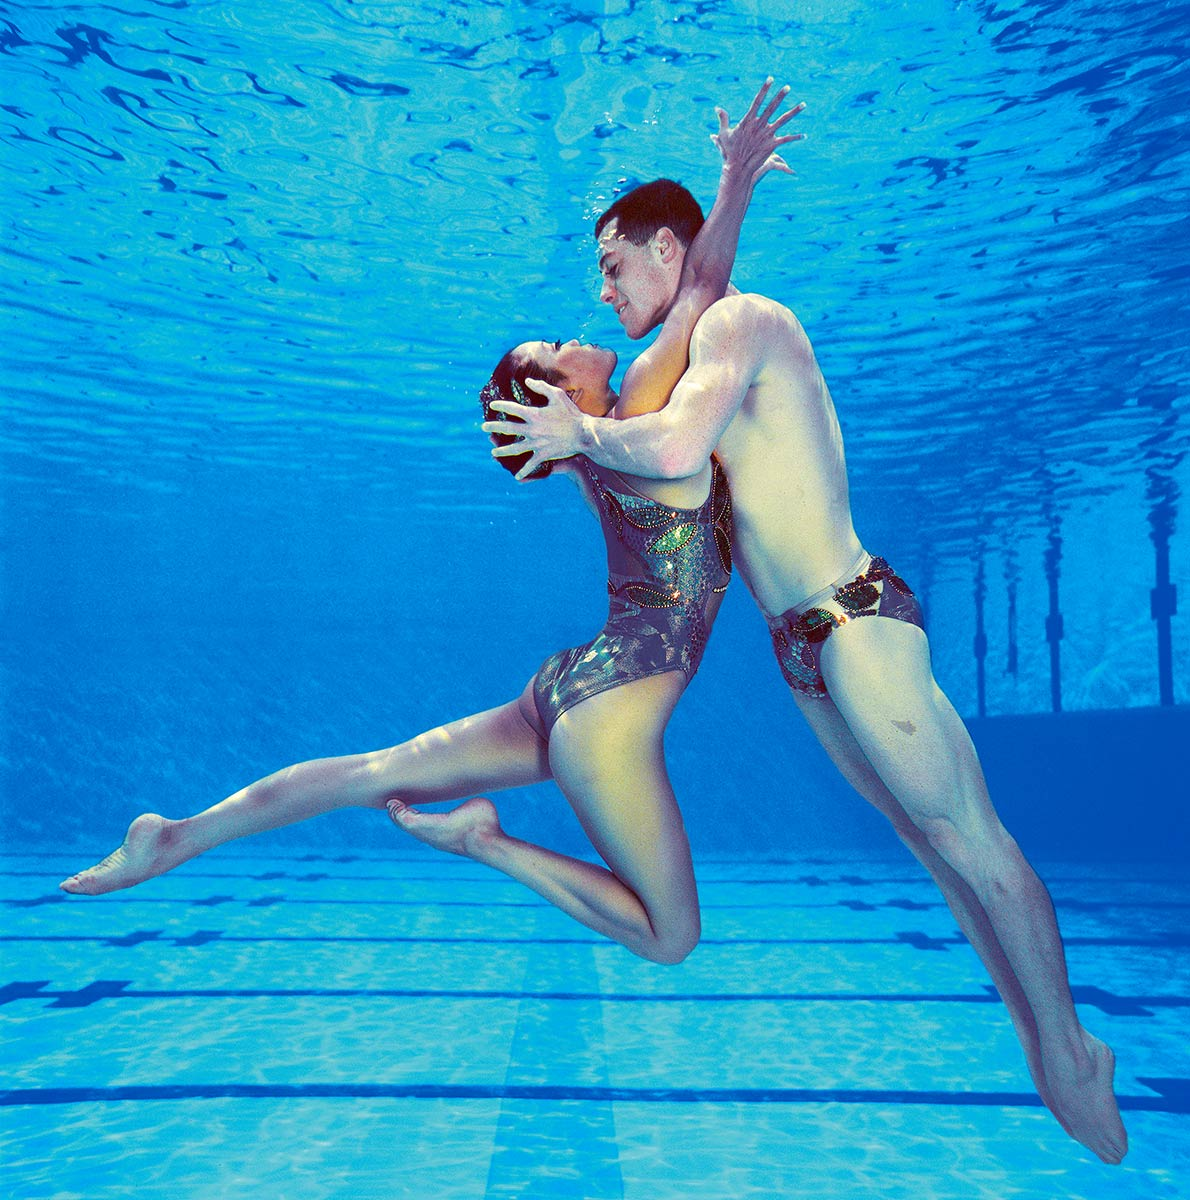 Lgbt Synchronised Swimmers Compete In The Gay Games